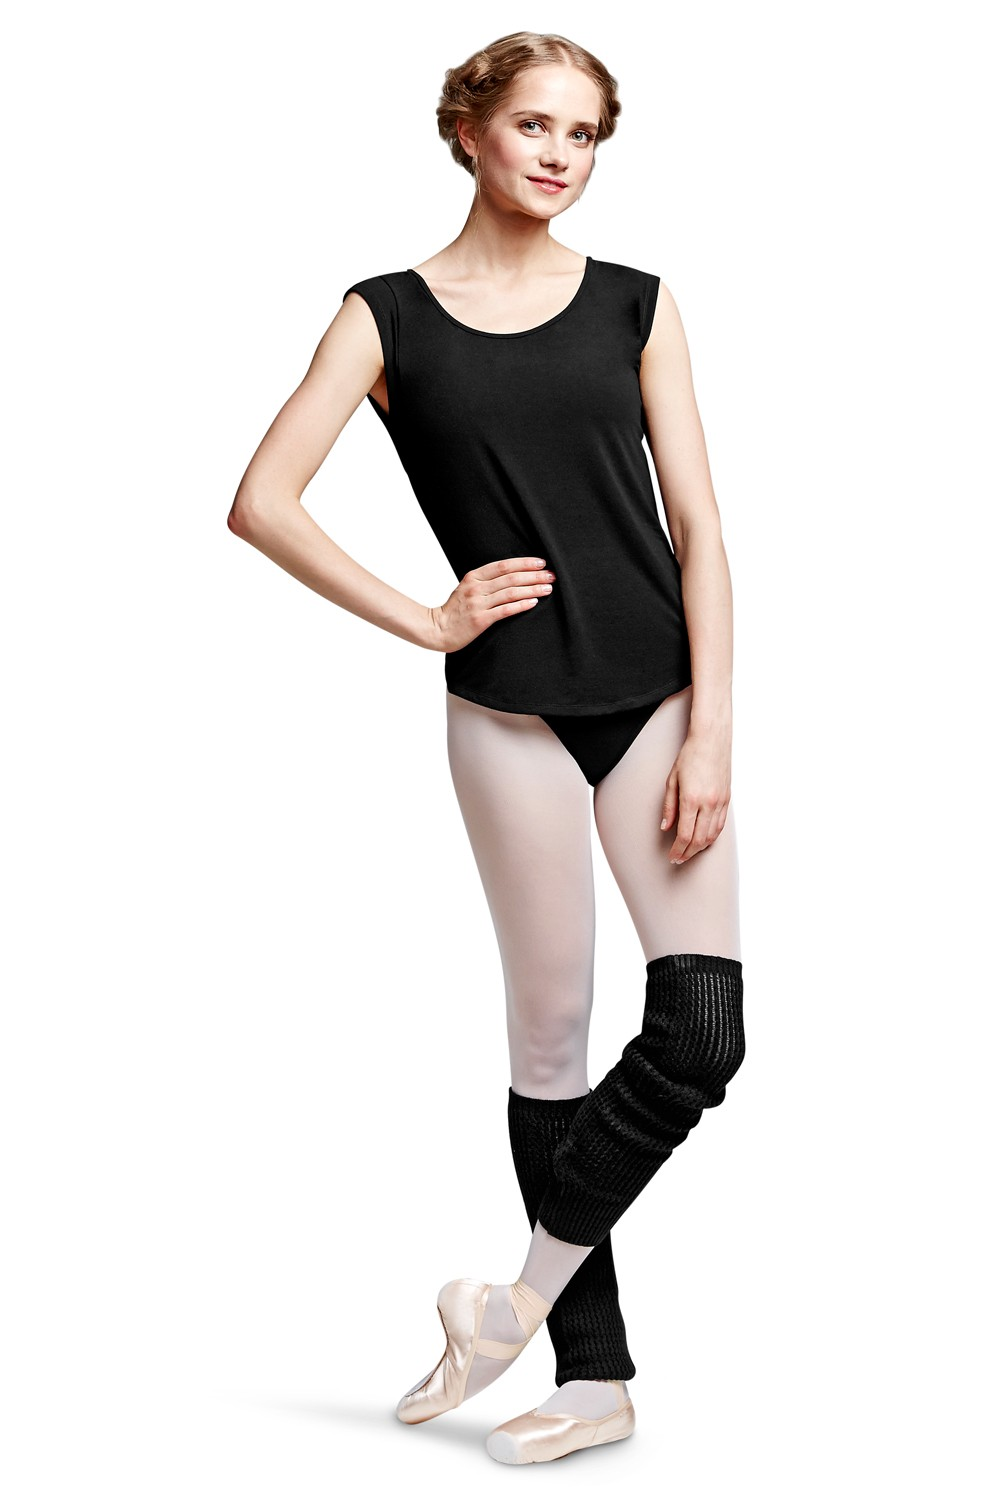 Onyx Women's Dance Tops